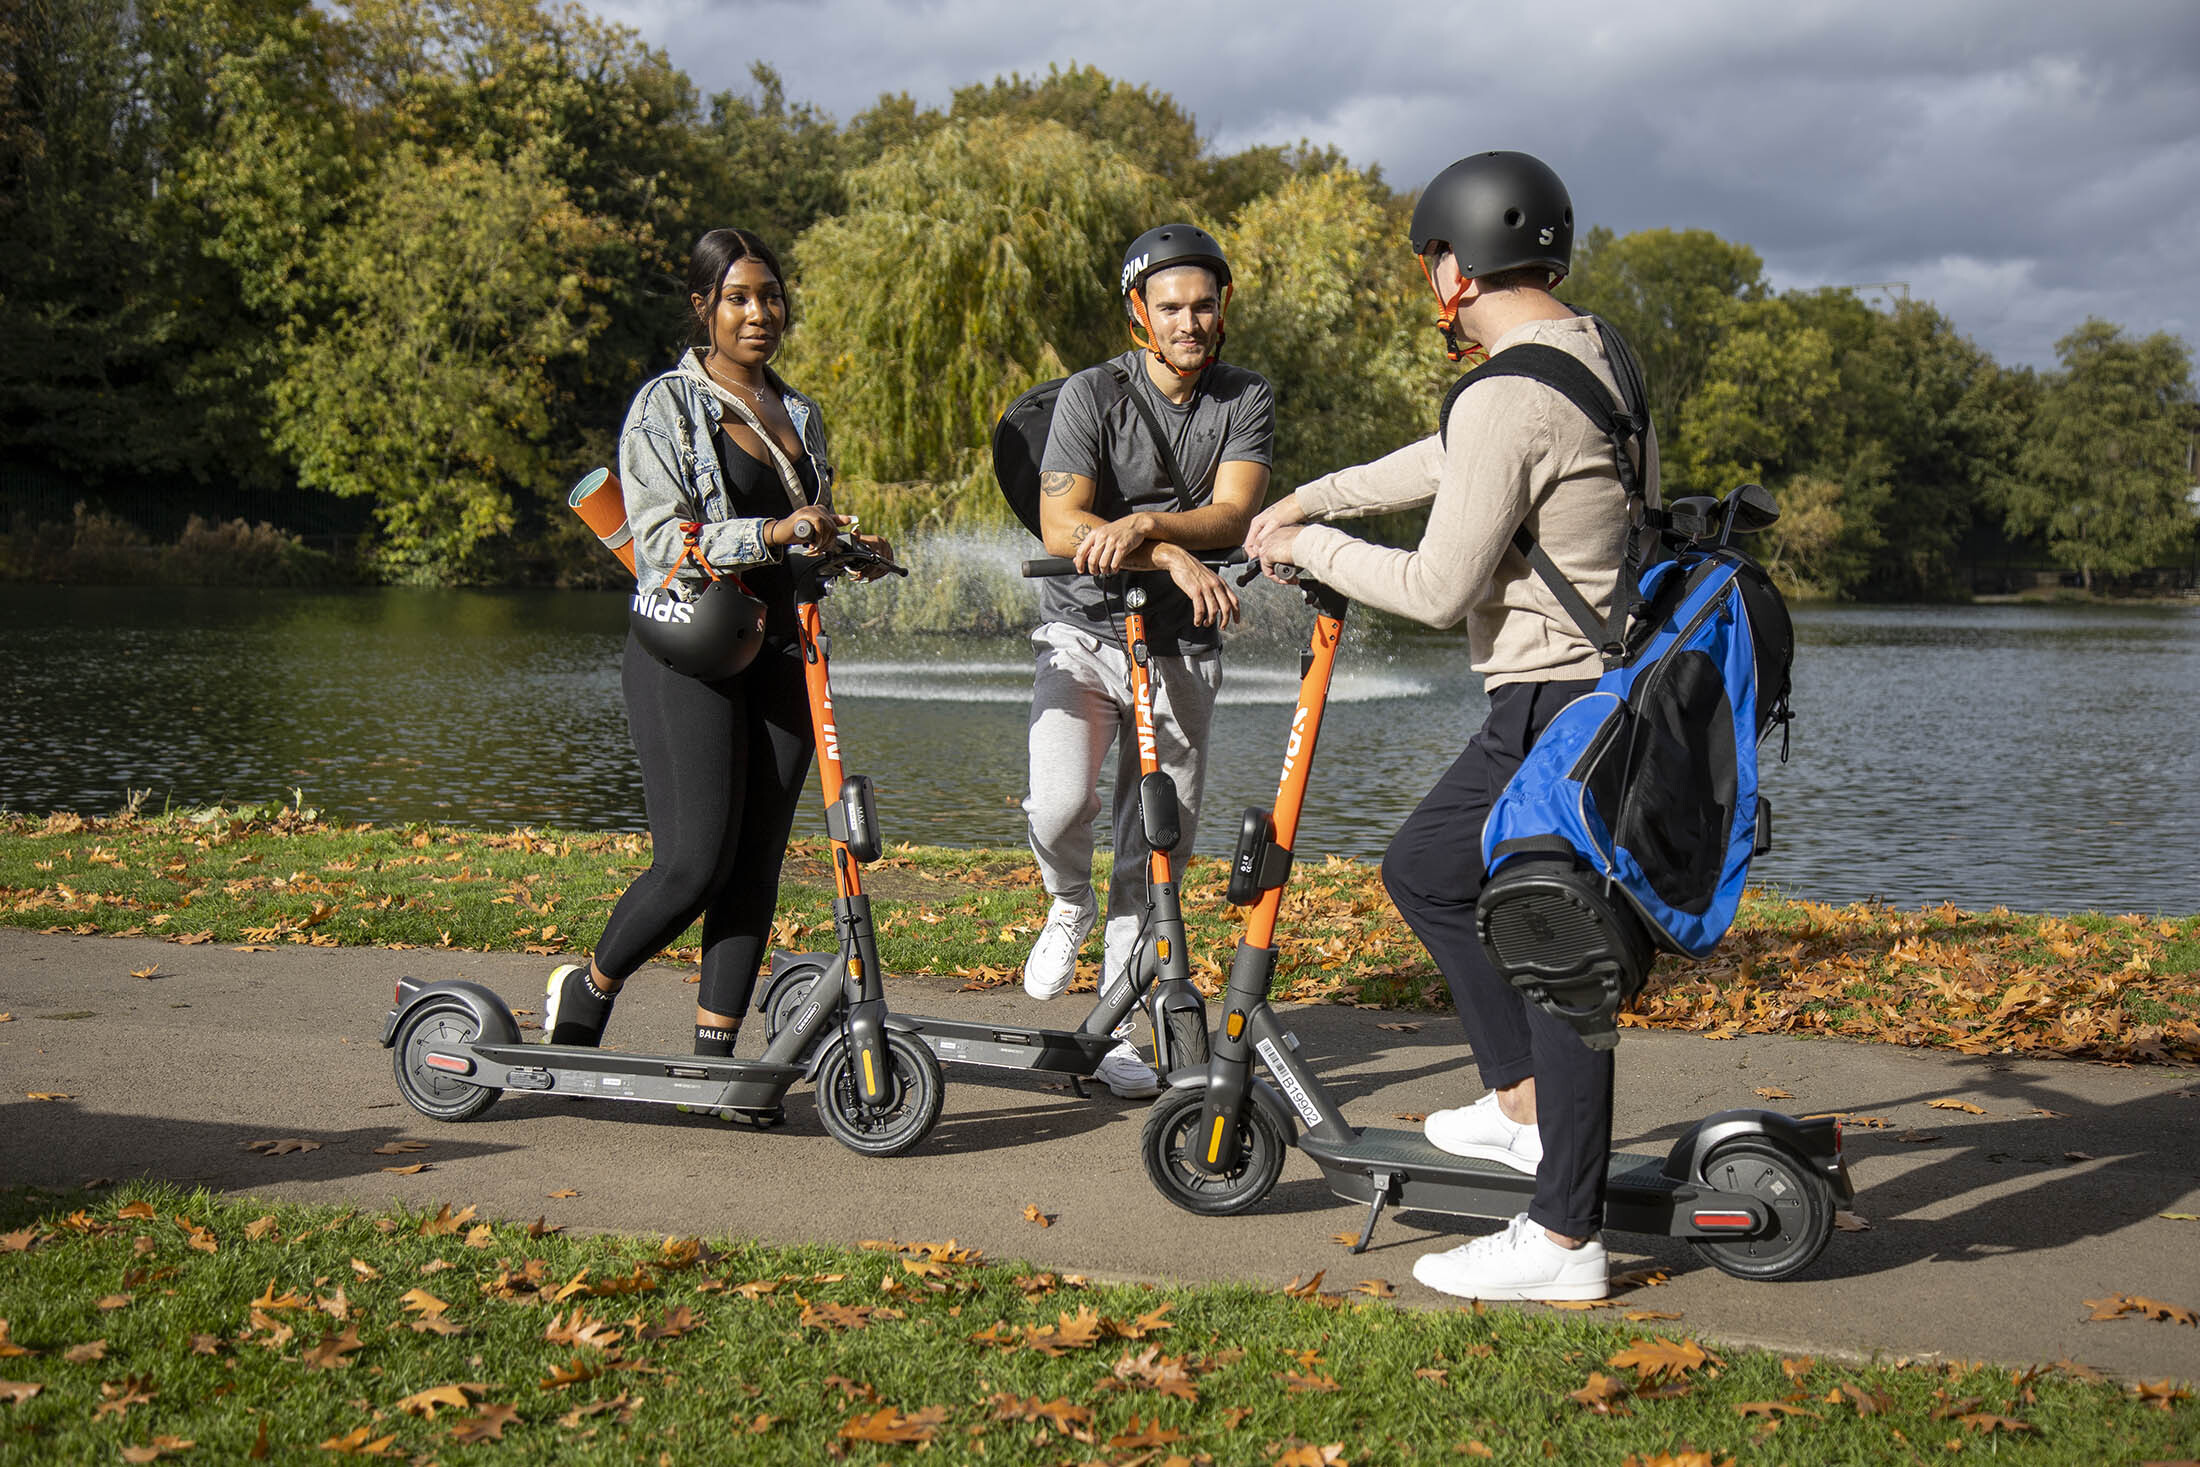 Three people wearing helmets and standing on scooters chat in a park near a lake.